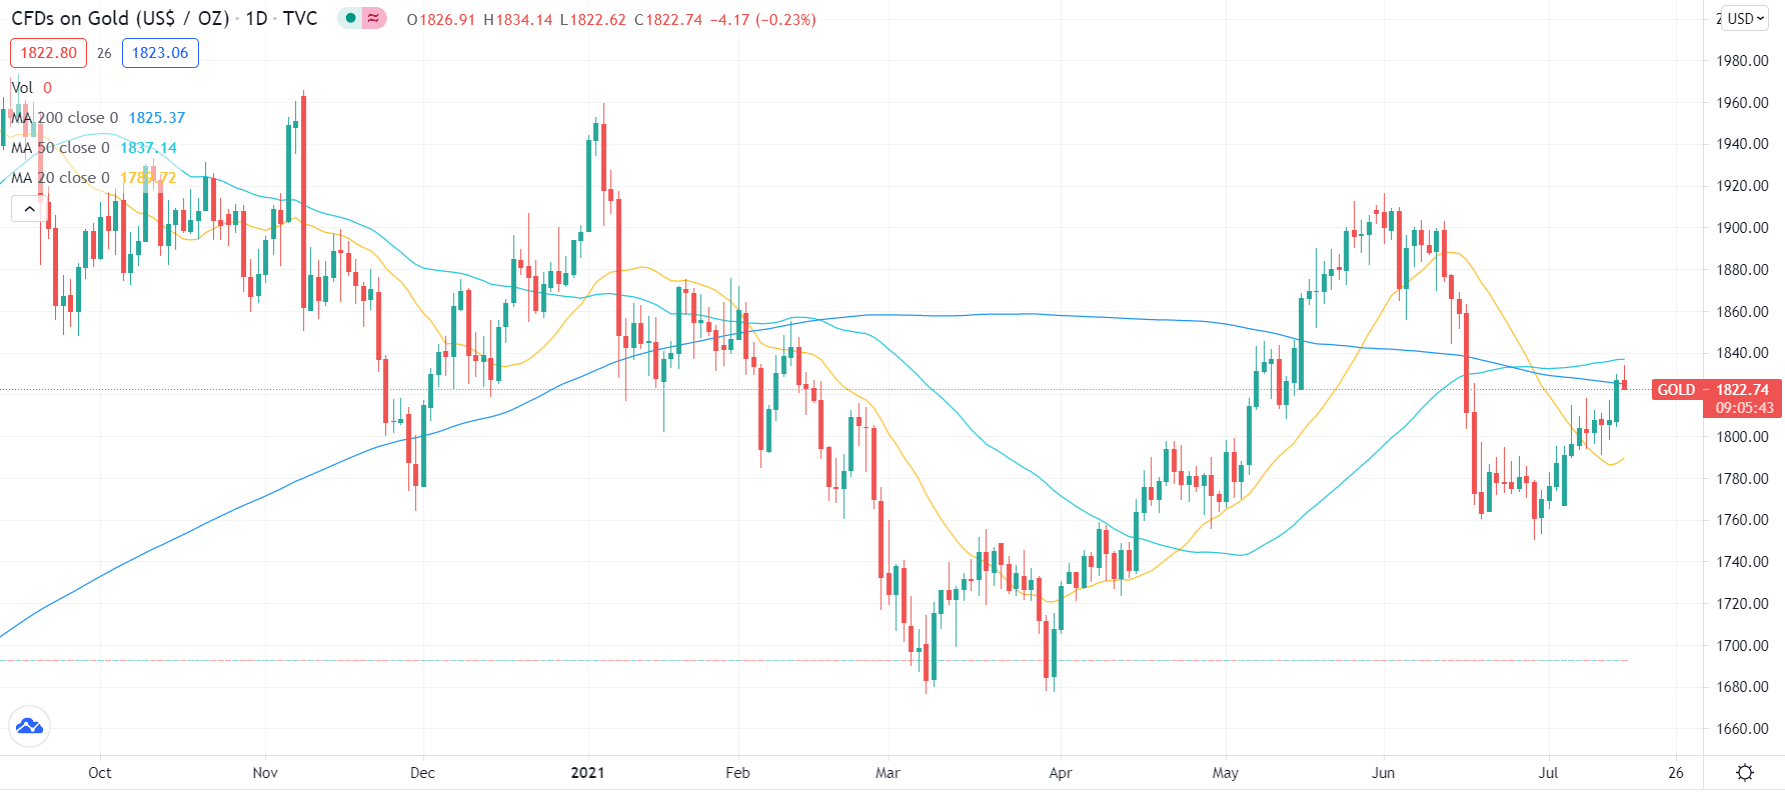 Gold price on daily chart